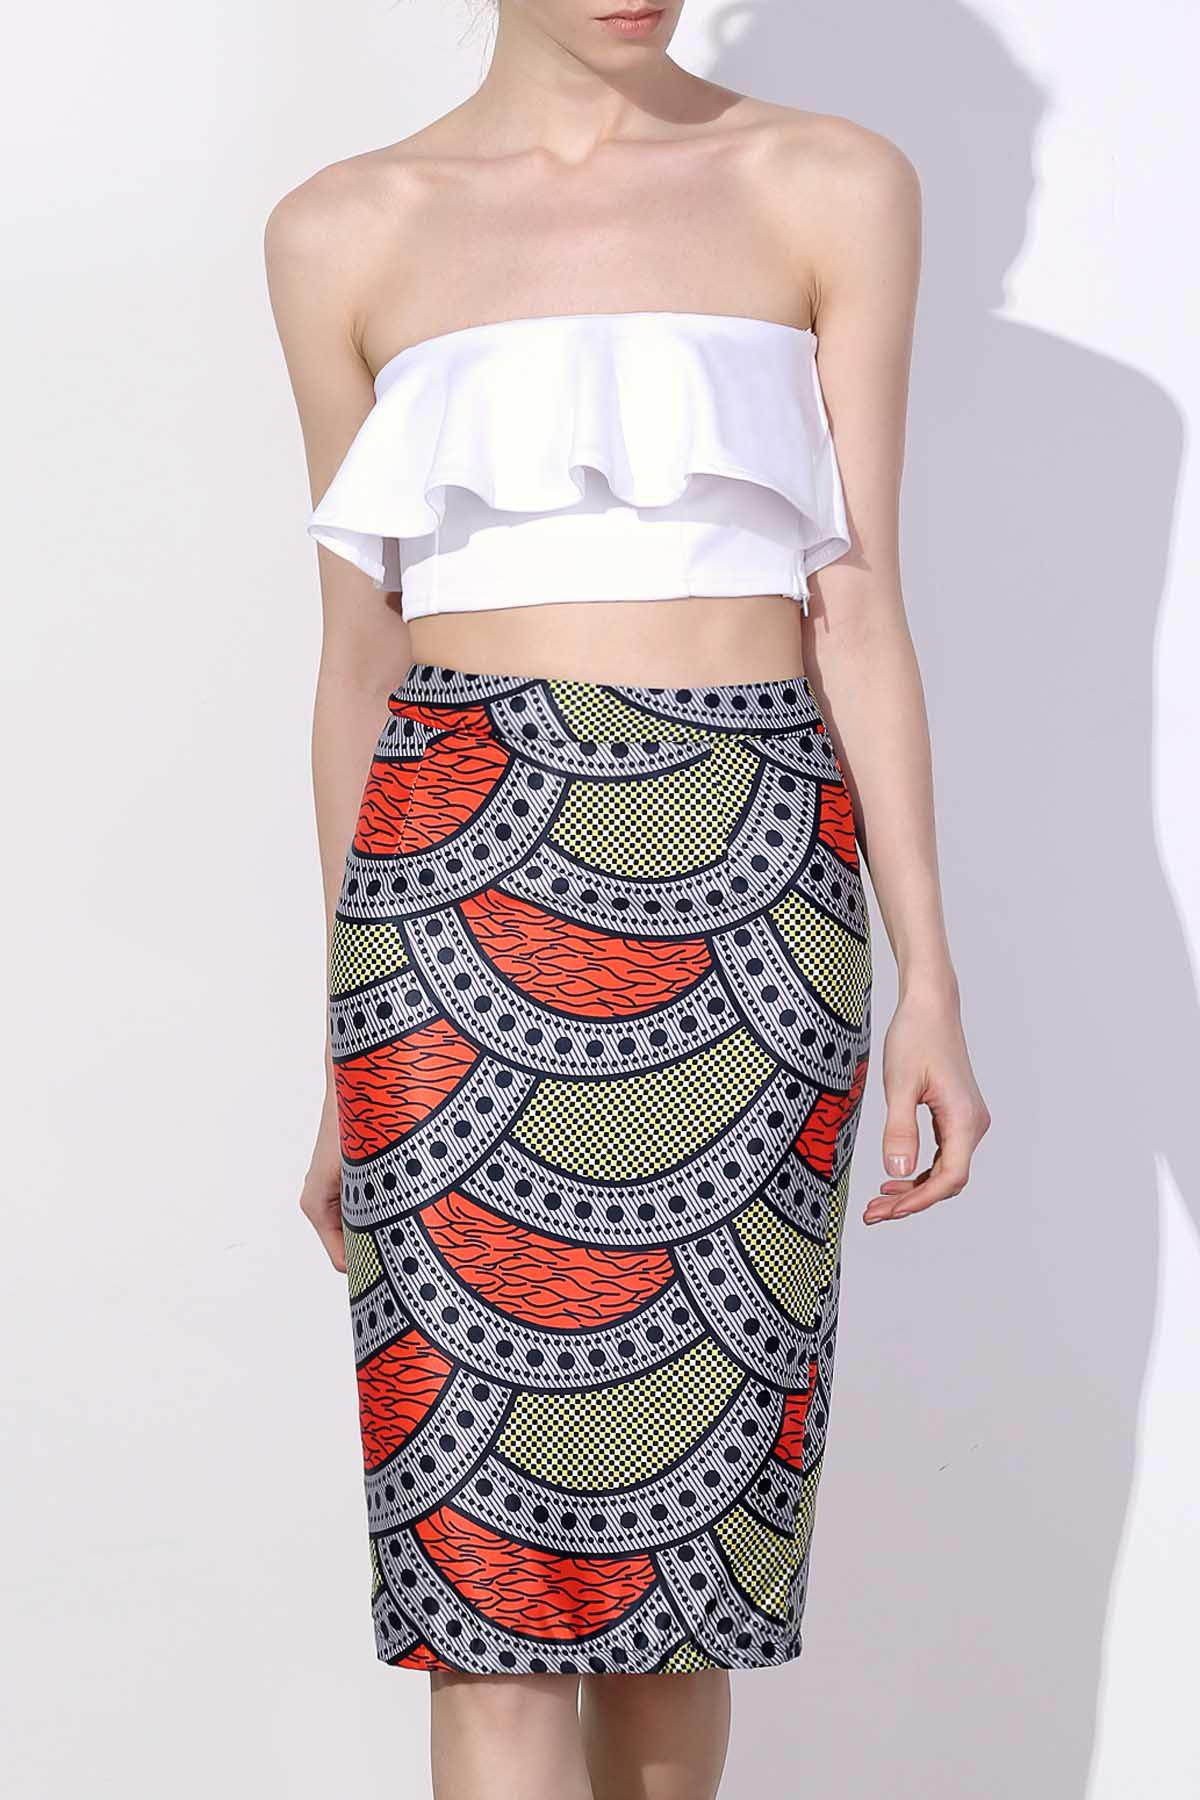 Stylish High-Waisted Bodycon Printed Women's Skirt - COLORMIX XL